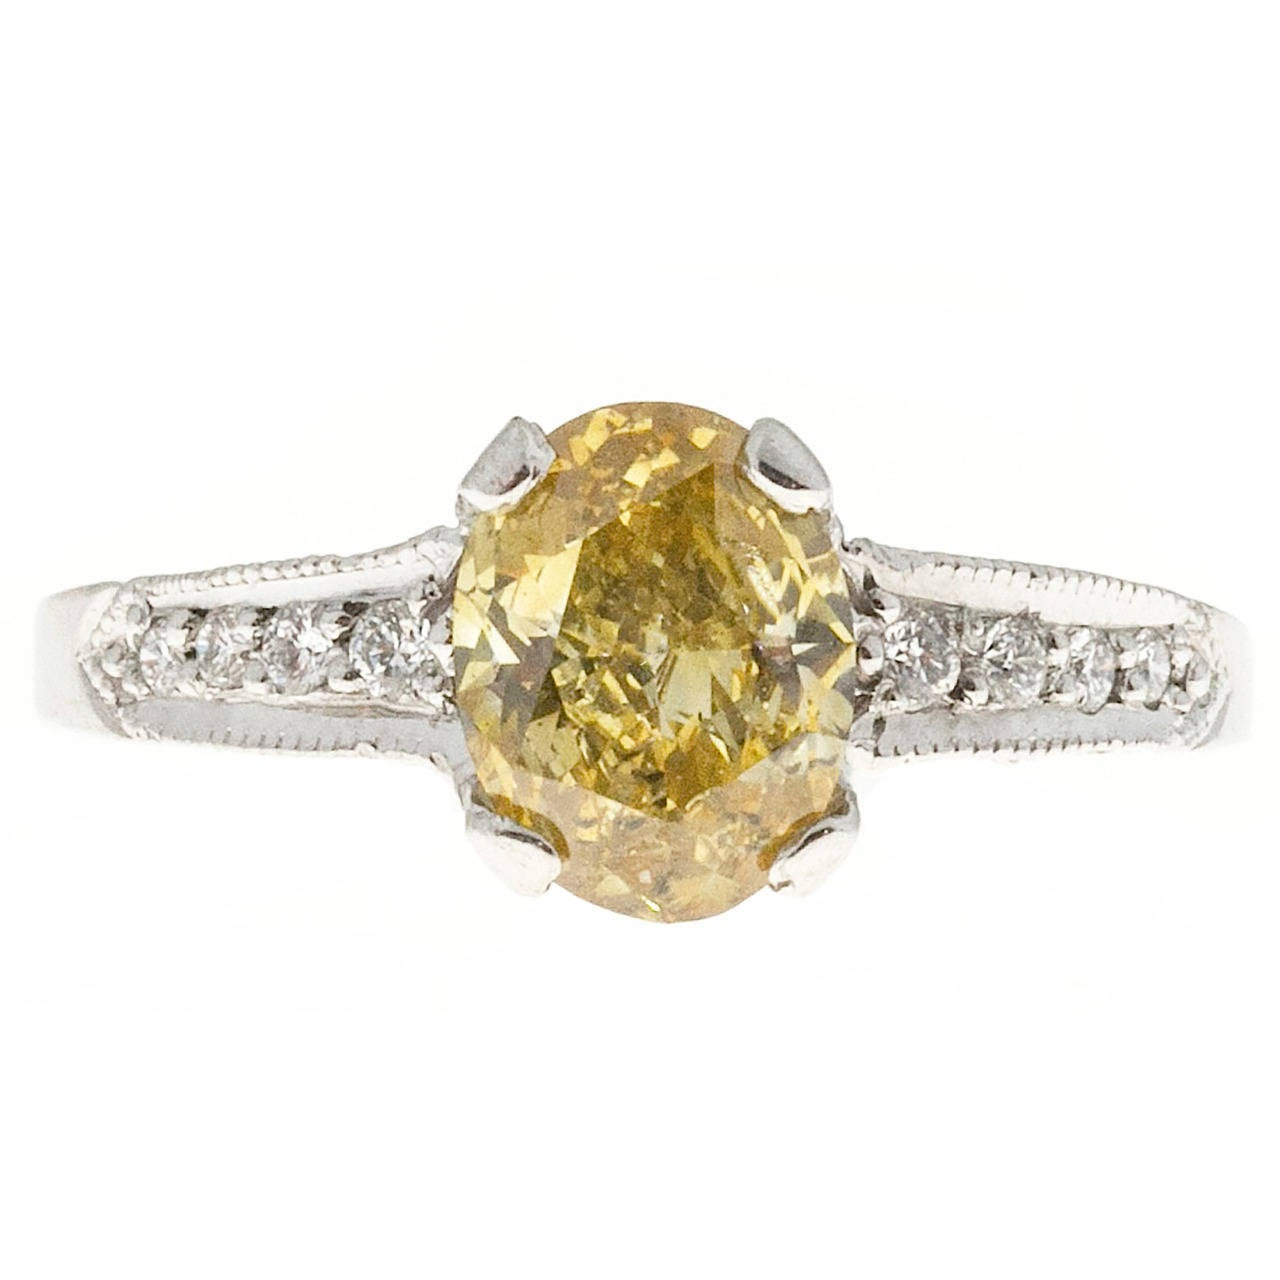 Oval Fancy Orange Yellow Diamond Platinum Micro Pave Ring For Sale at 1stdibs